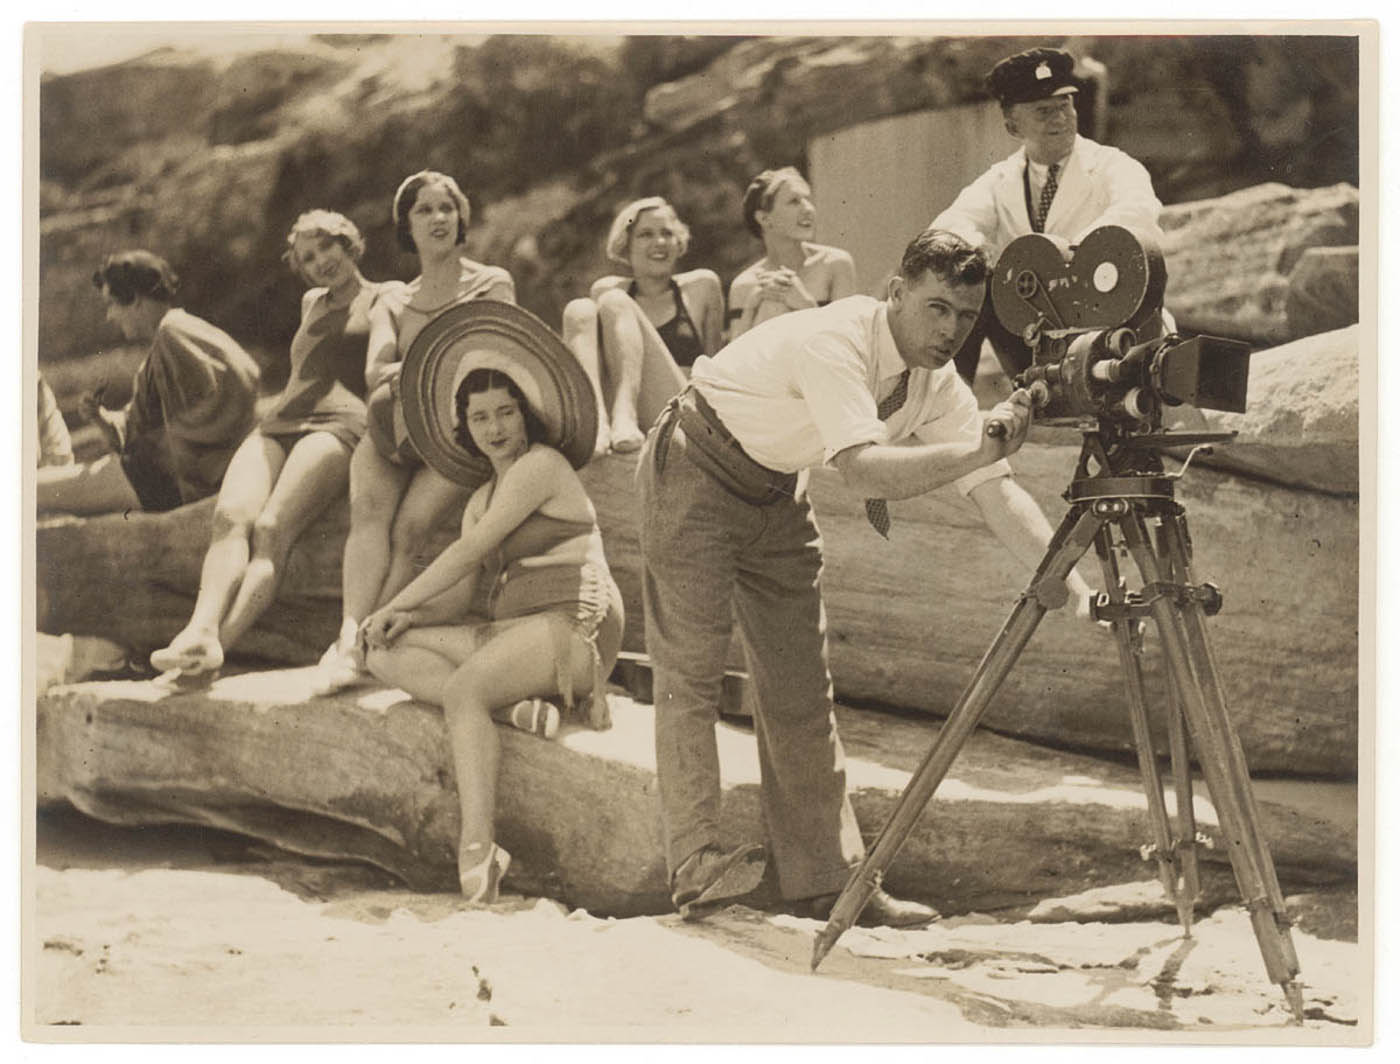 Men and women at the beach, filming with a hand wound camera, New South Wales, ca. 1935, Sam Hood